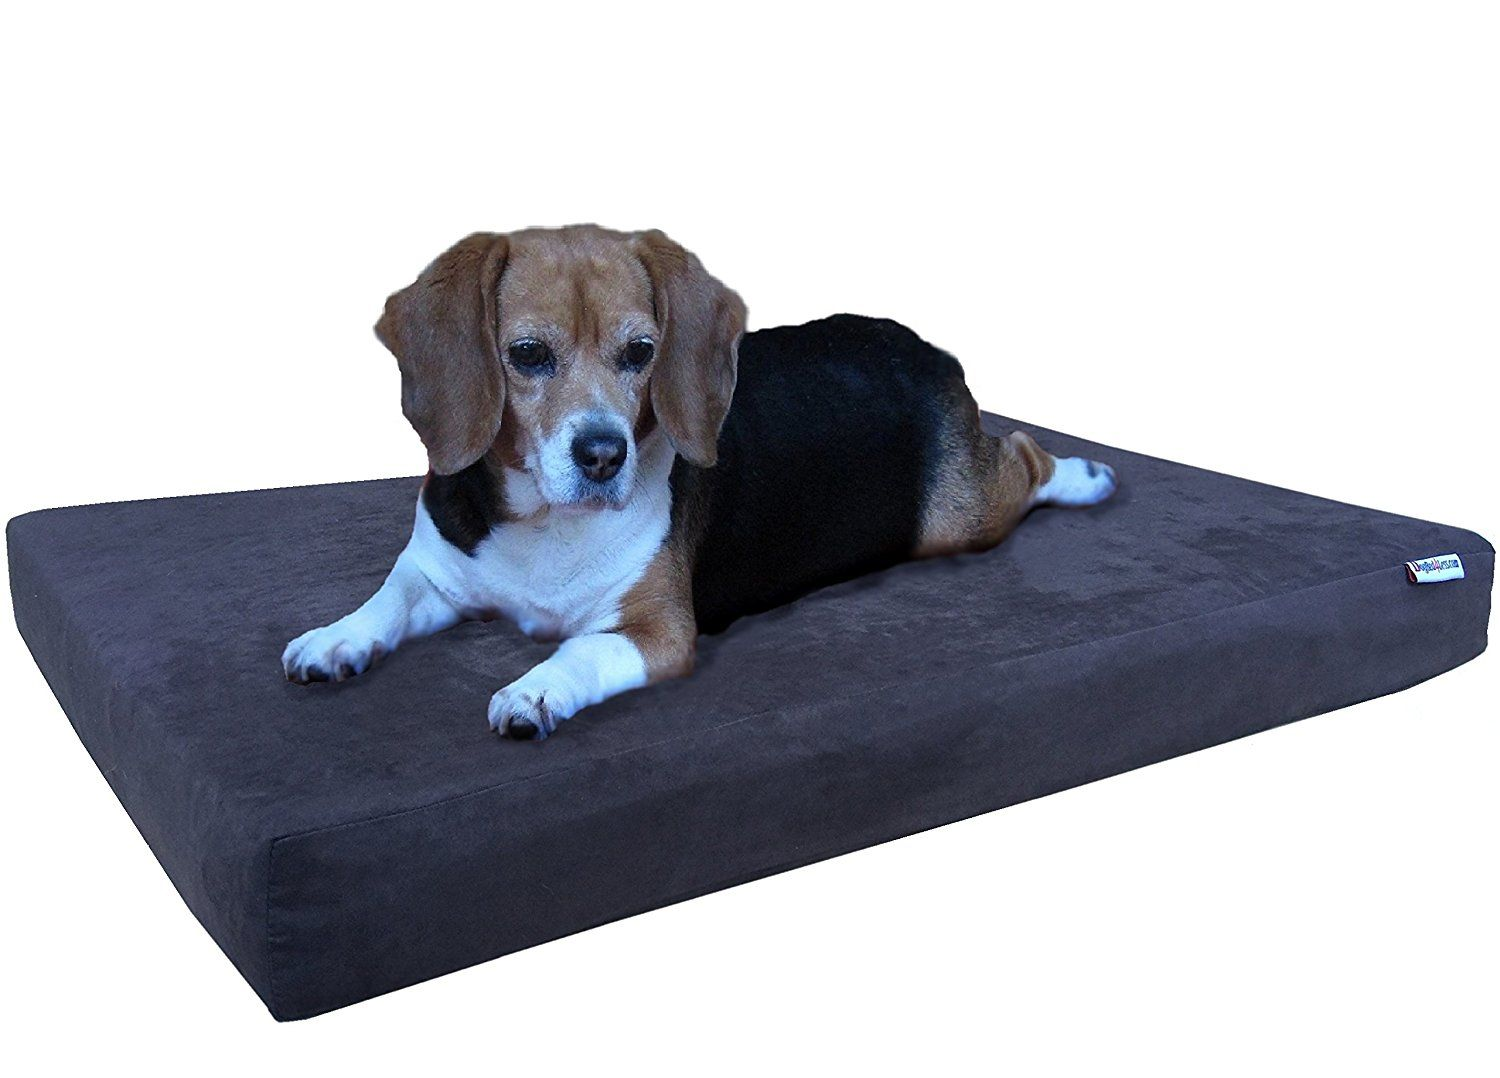 Dogbed4less Orthopedic Gel Cooling Memory Foam Dog Bed For Small